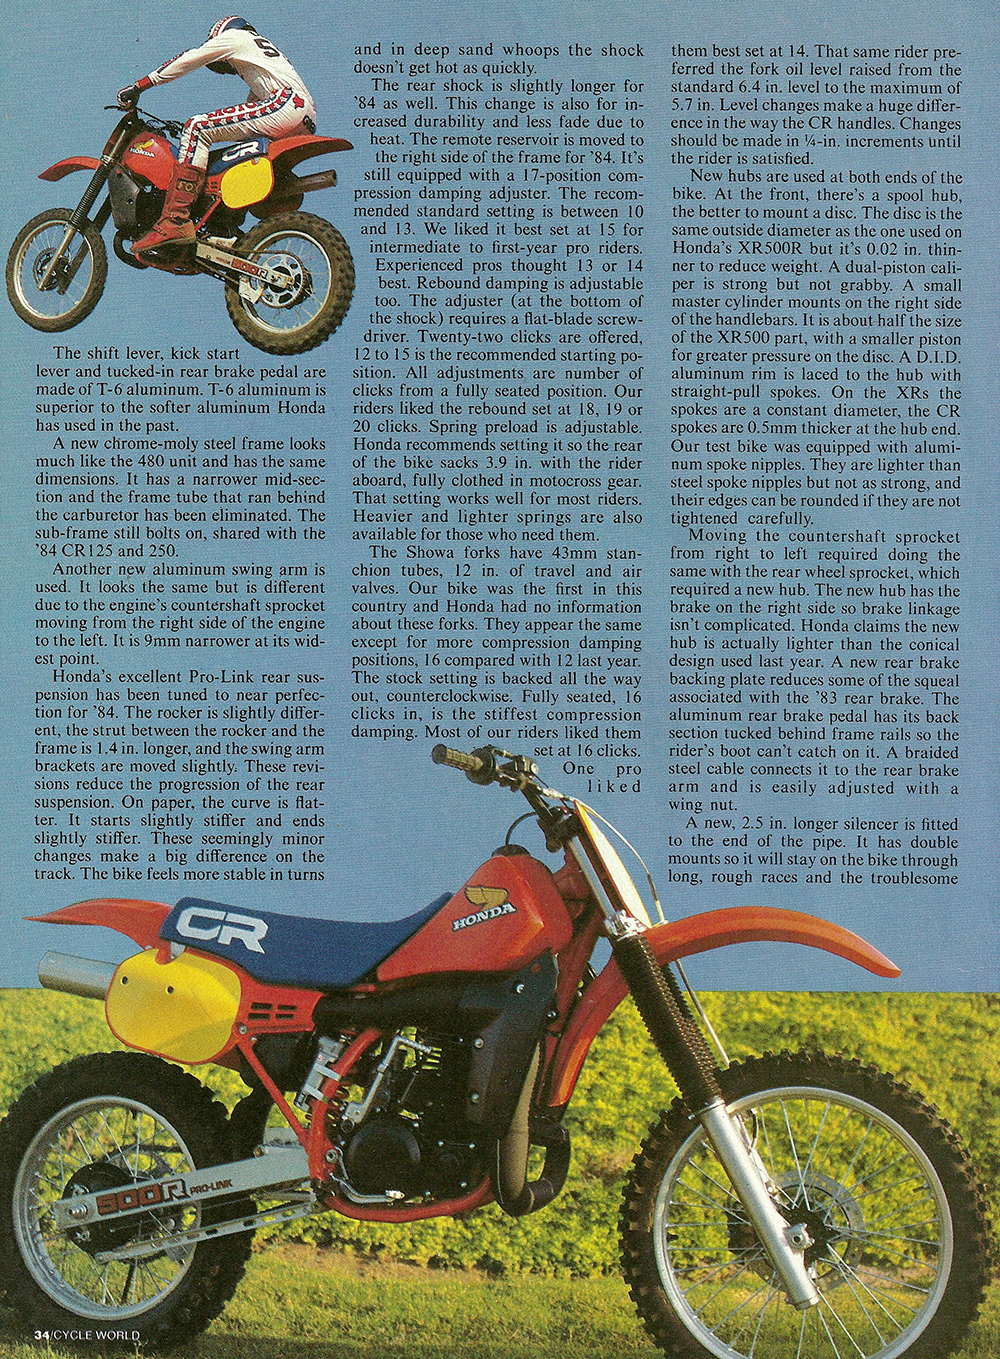 1983 Honda CR500R road test 03.jpg